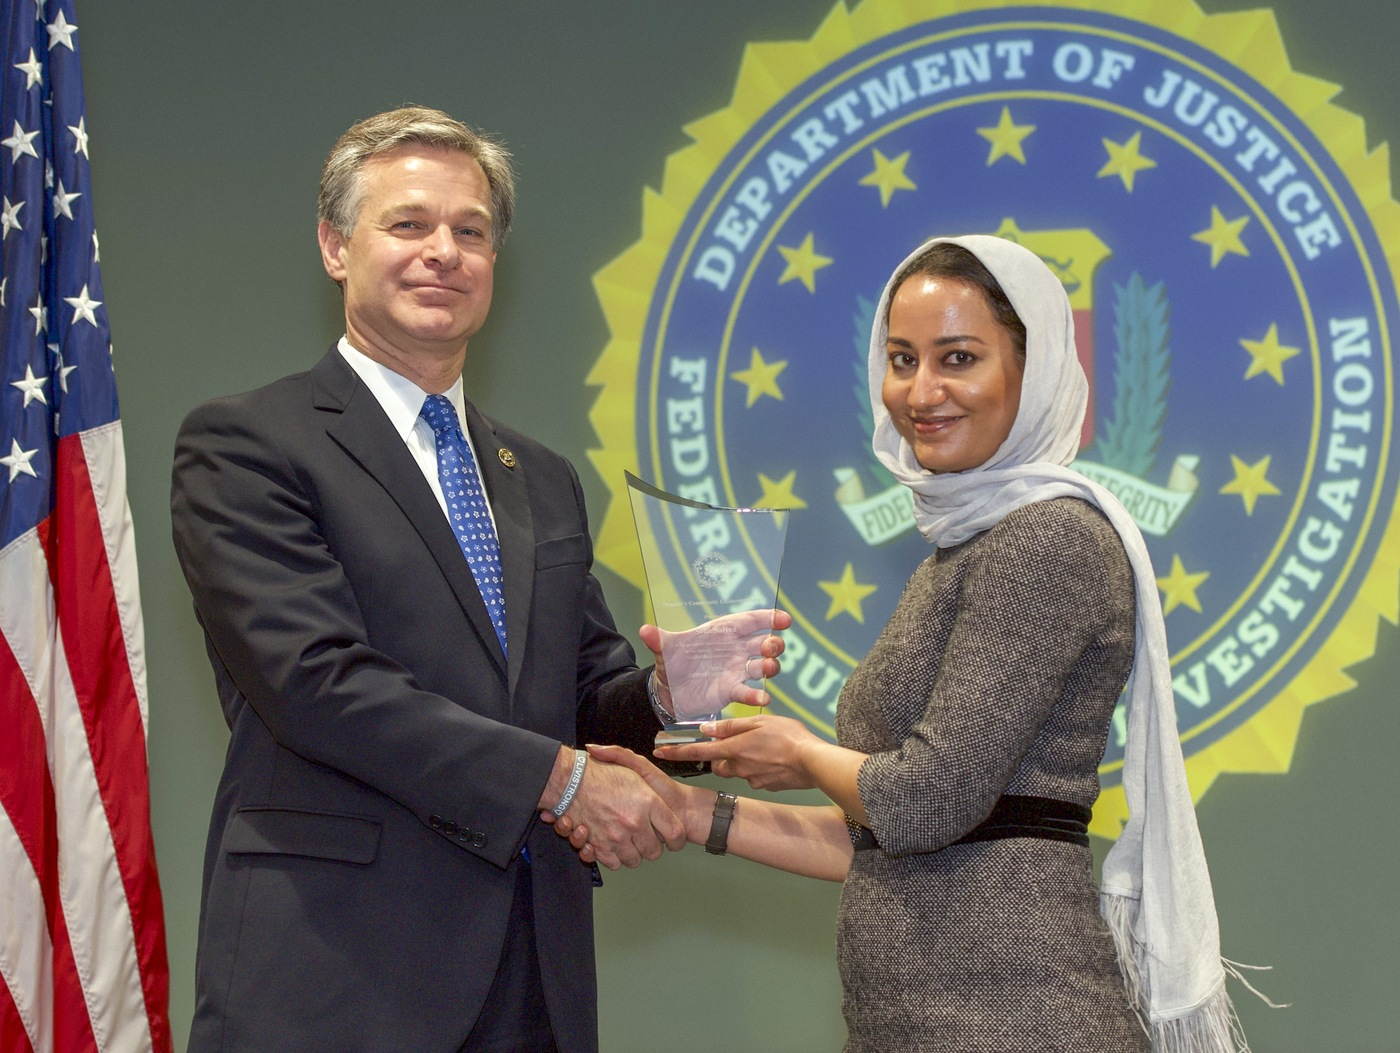 FBI Director Christopher Wray presents Louisville Division recipient Soha Saiyed with the Director's Community Leadership Award (DCLA) at a ceremony at FBI Headquarters on May 3, 2019.